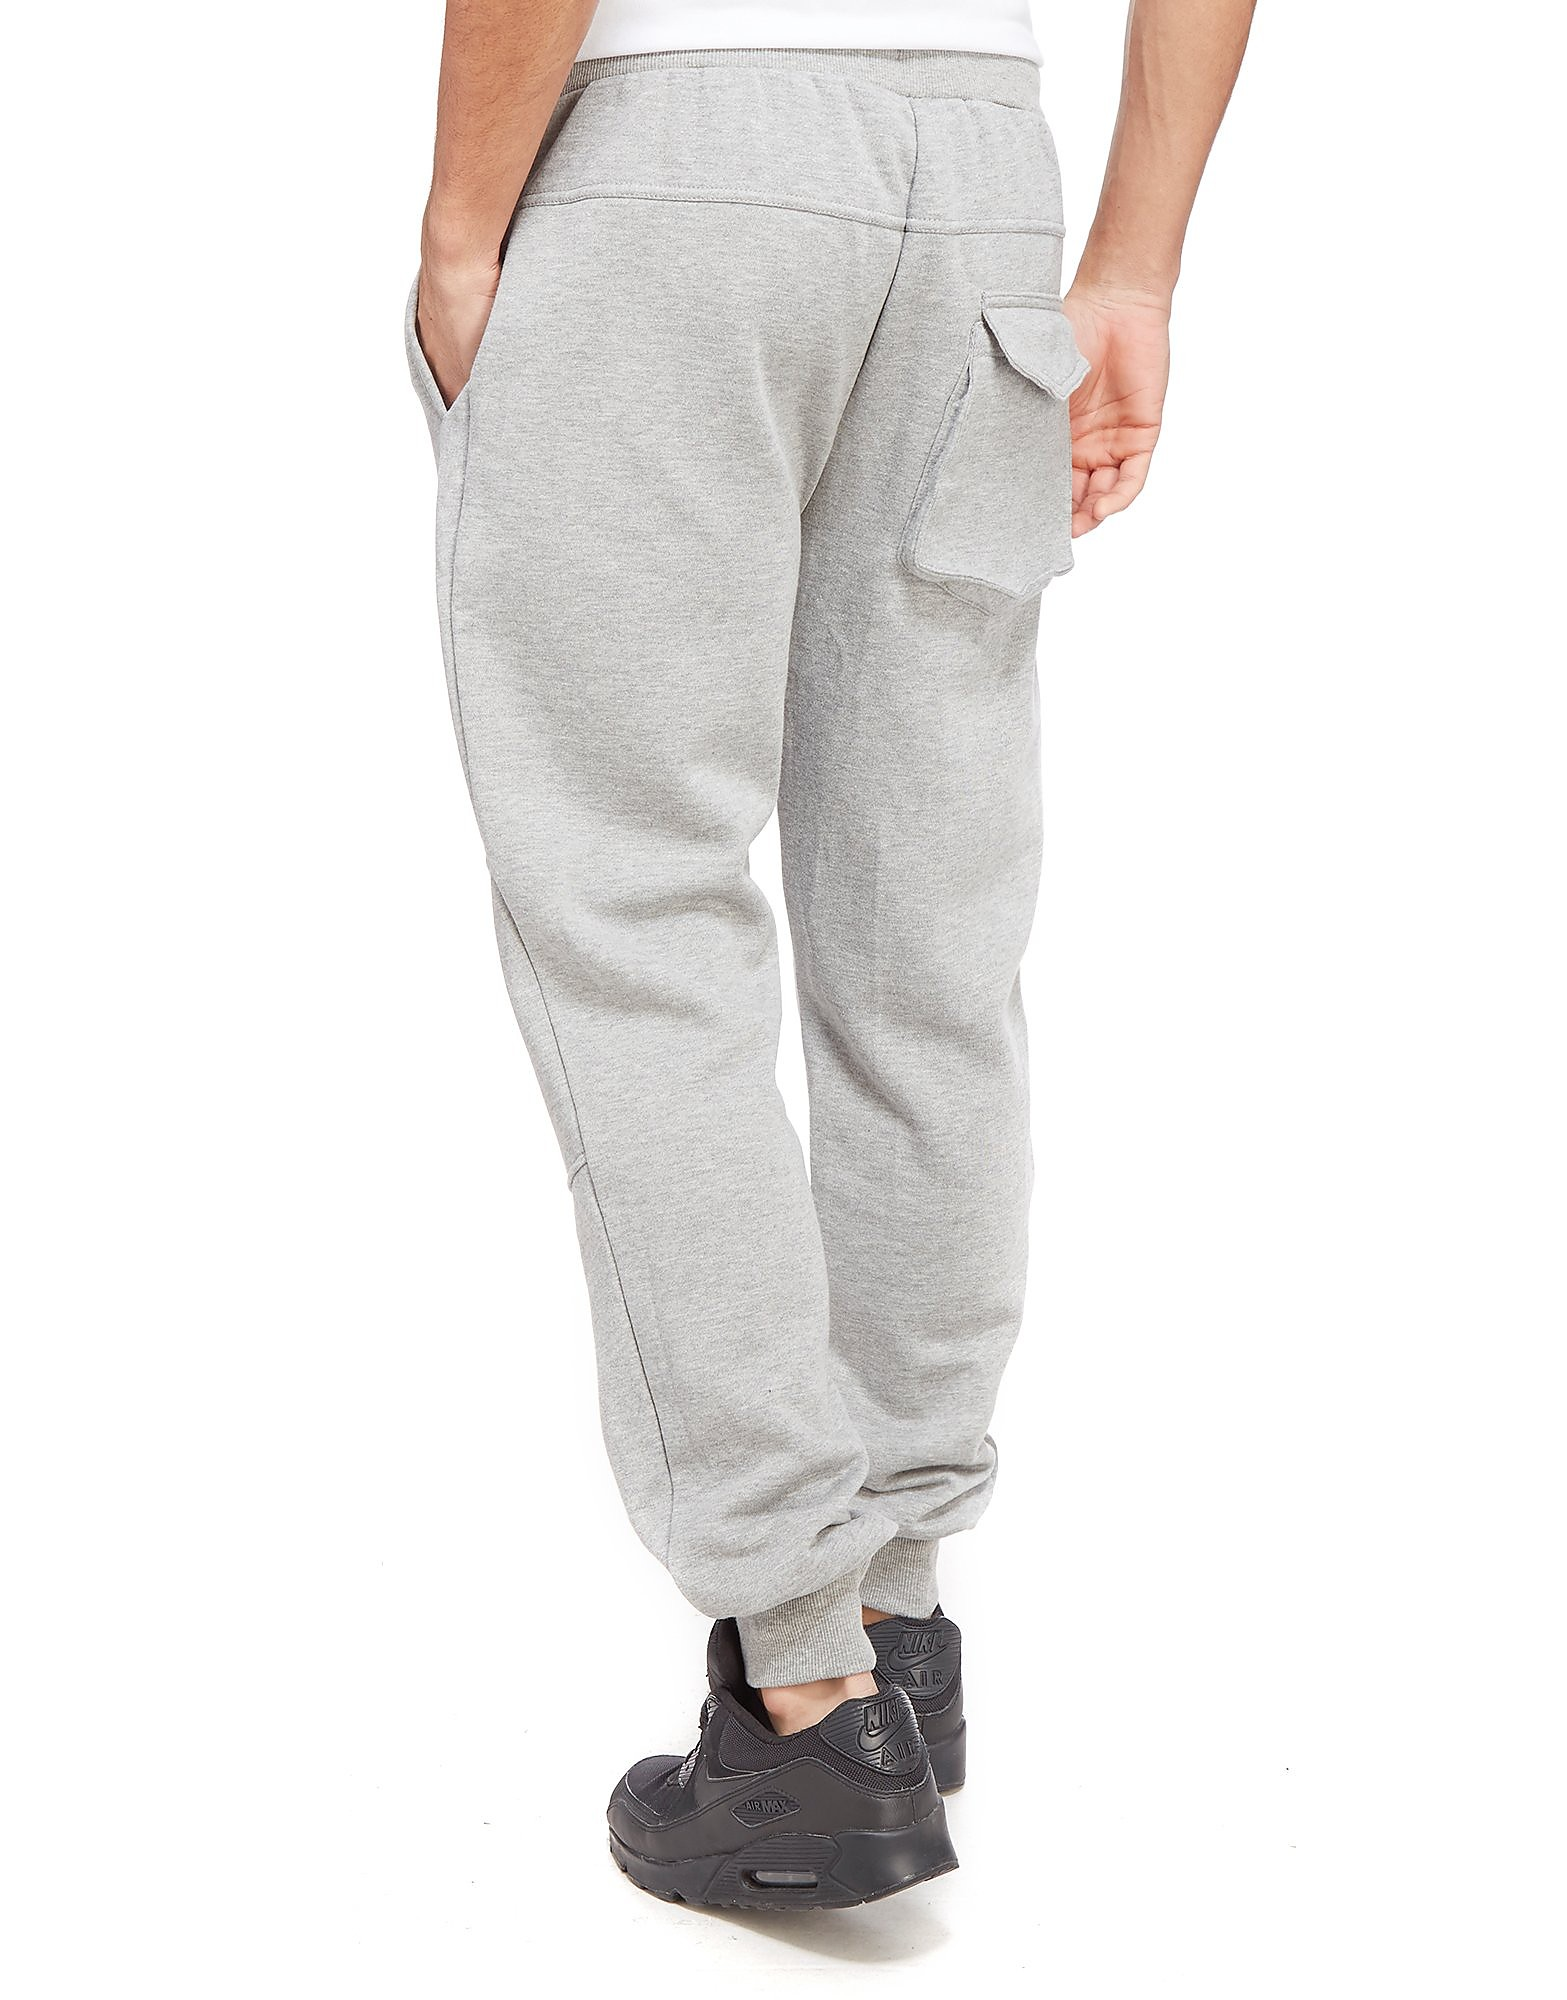 Henleys Stretford Fleece Pants